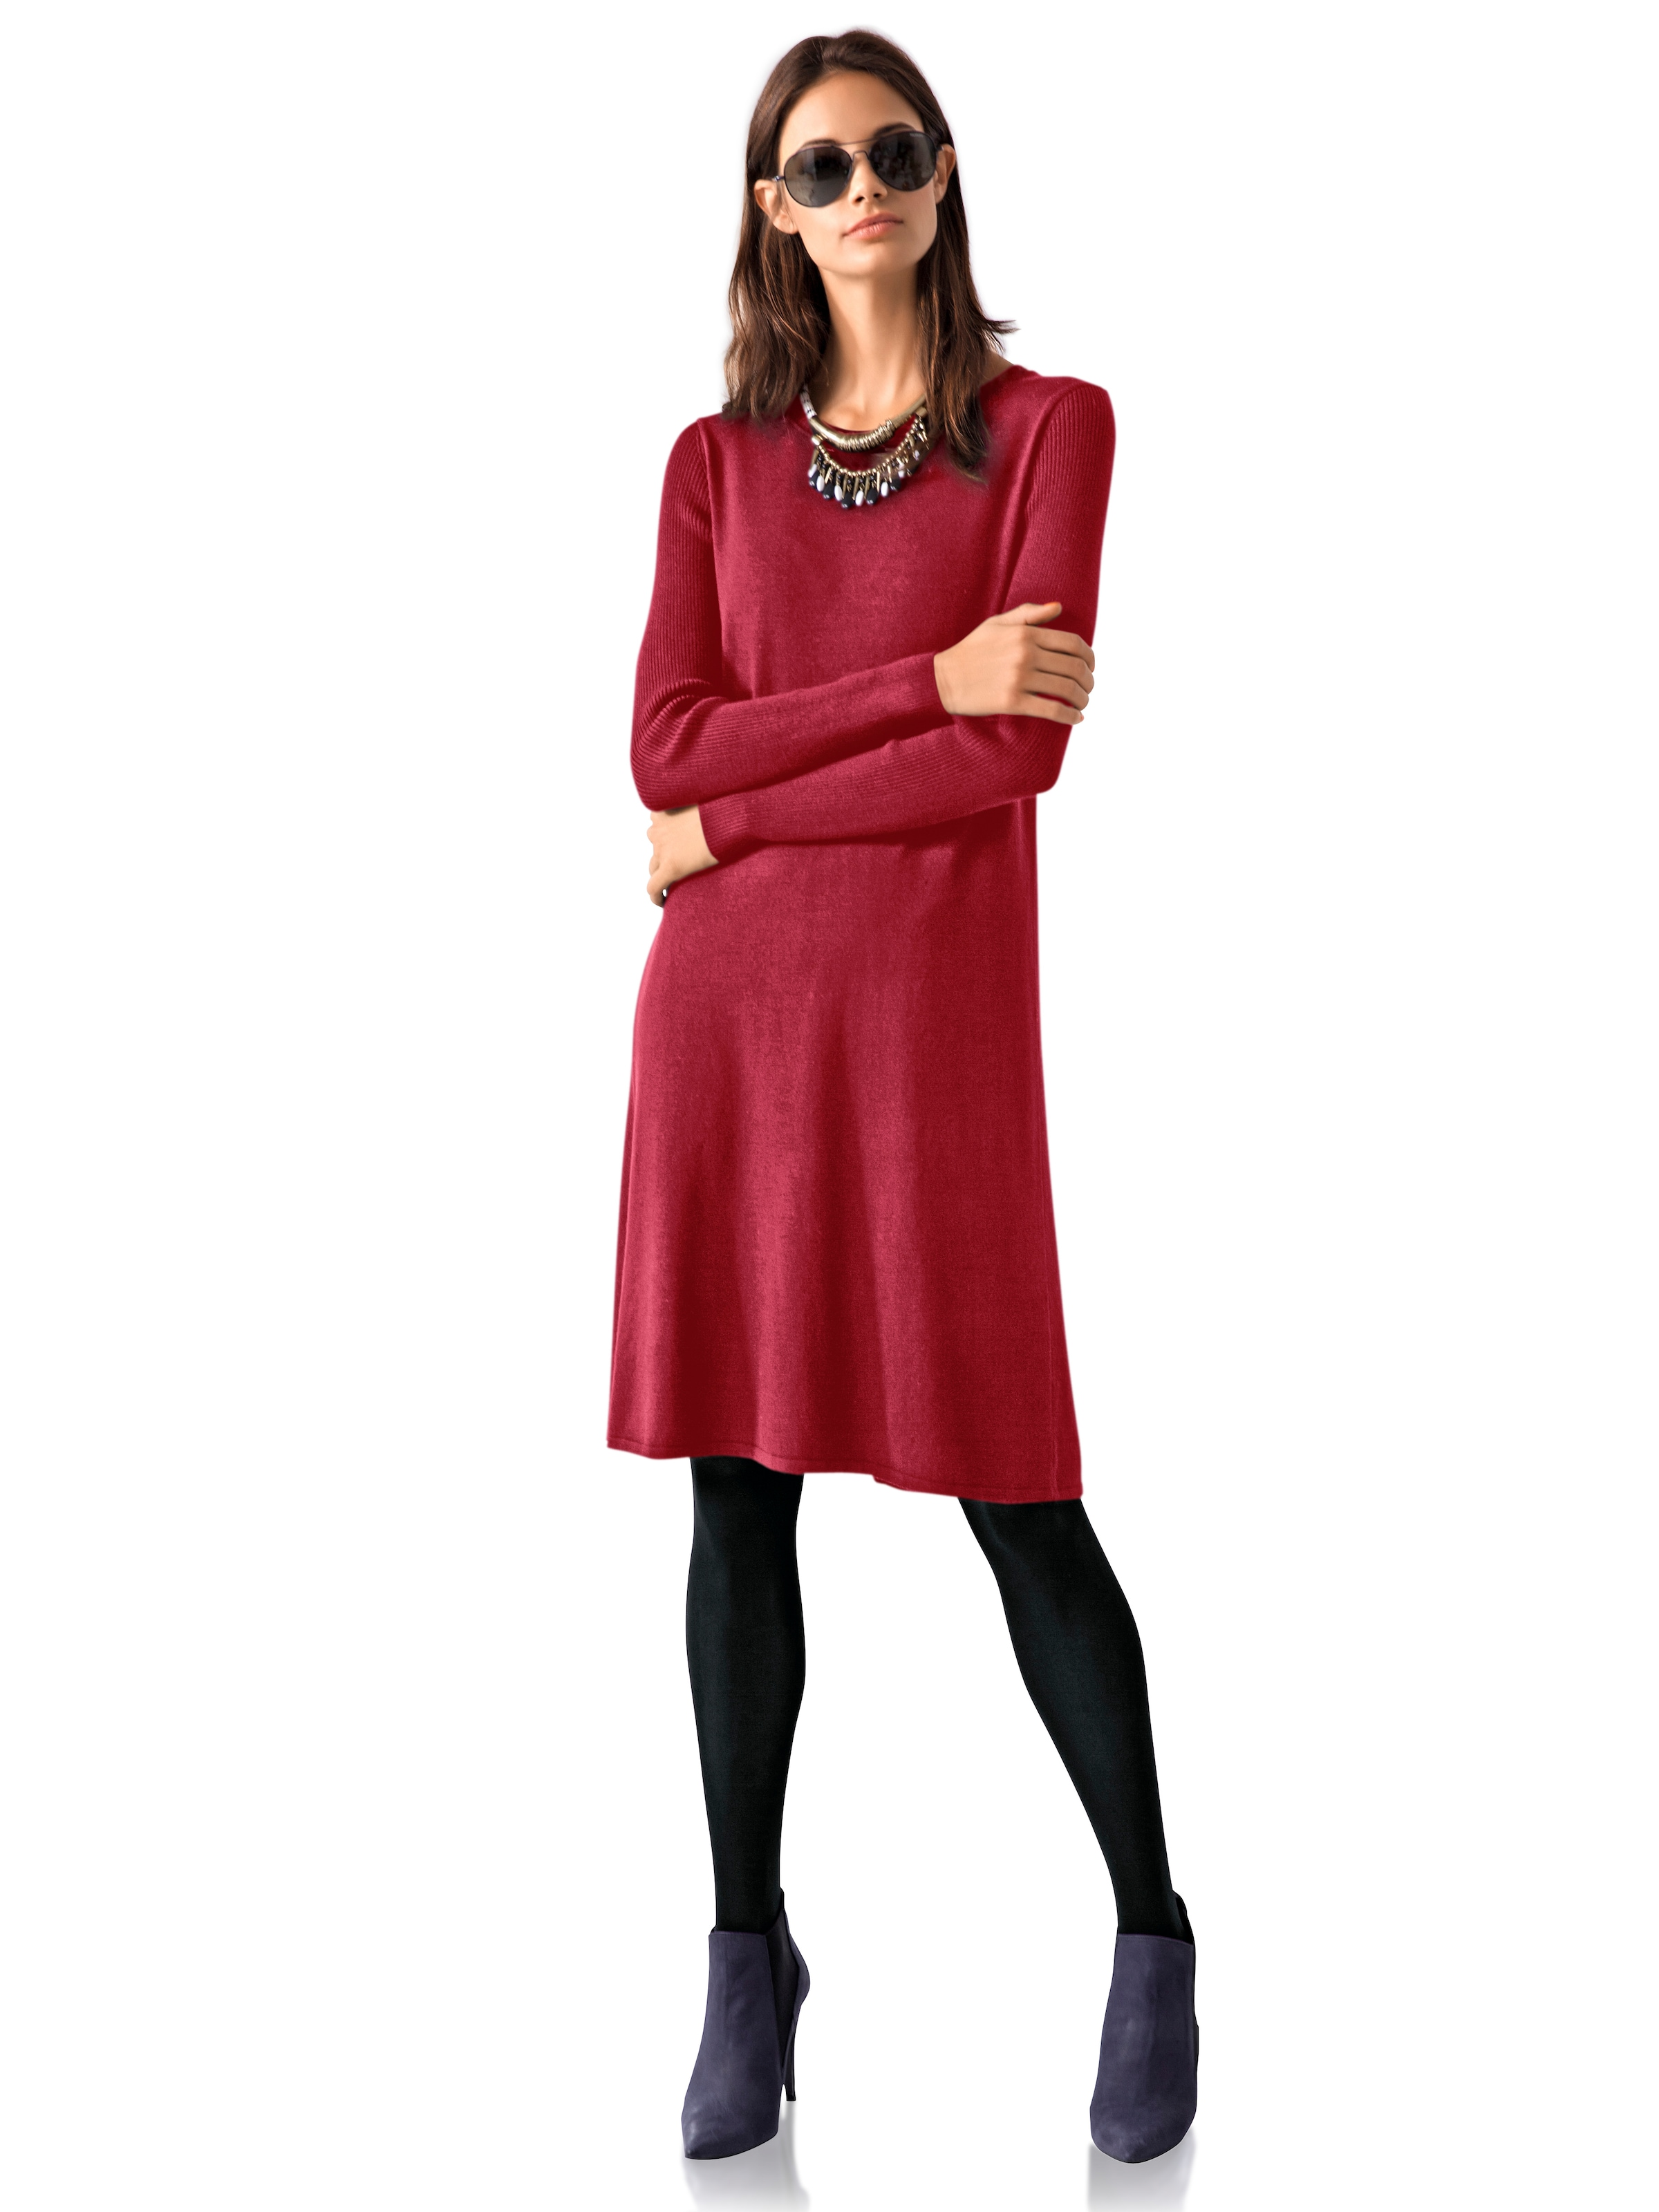 Heine In In Strickkleid In Strickkleid Strickkleid Heine Weinrot Strickkleid Weinrot Heine Heine Weinrot In IE2YW9DH